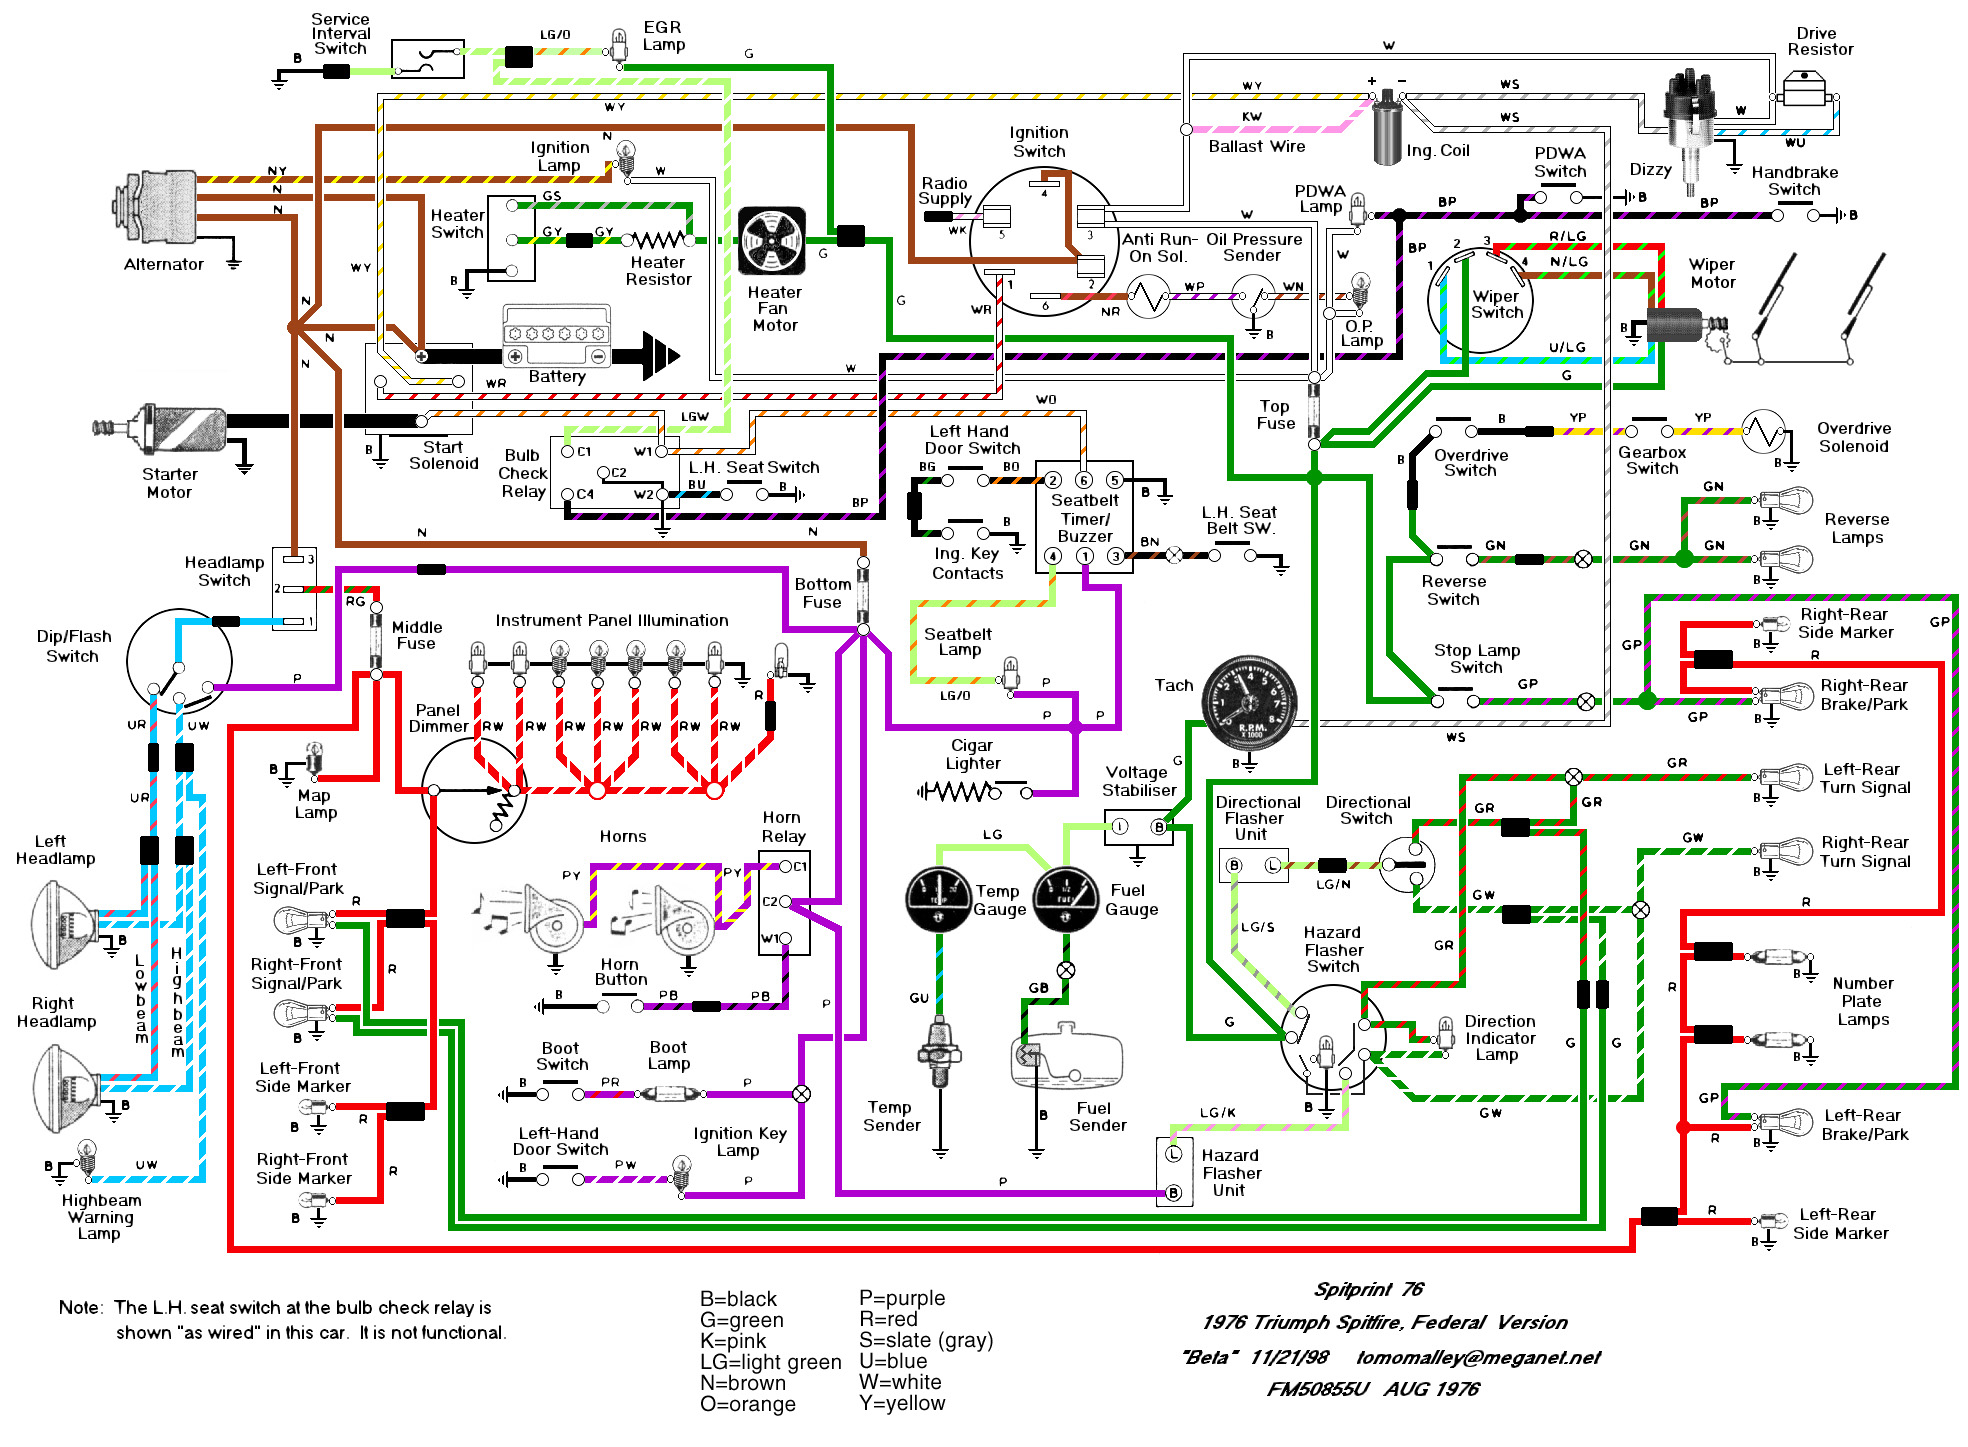 hd wiring diagram online circuit wiring diagram u2022 rh electrobuddha co uk